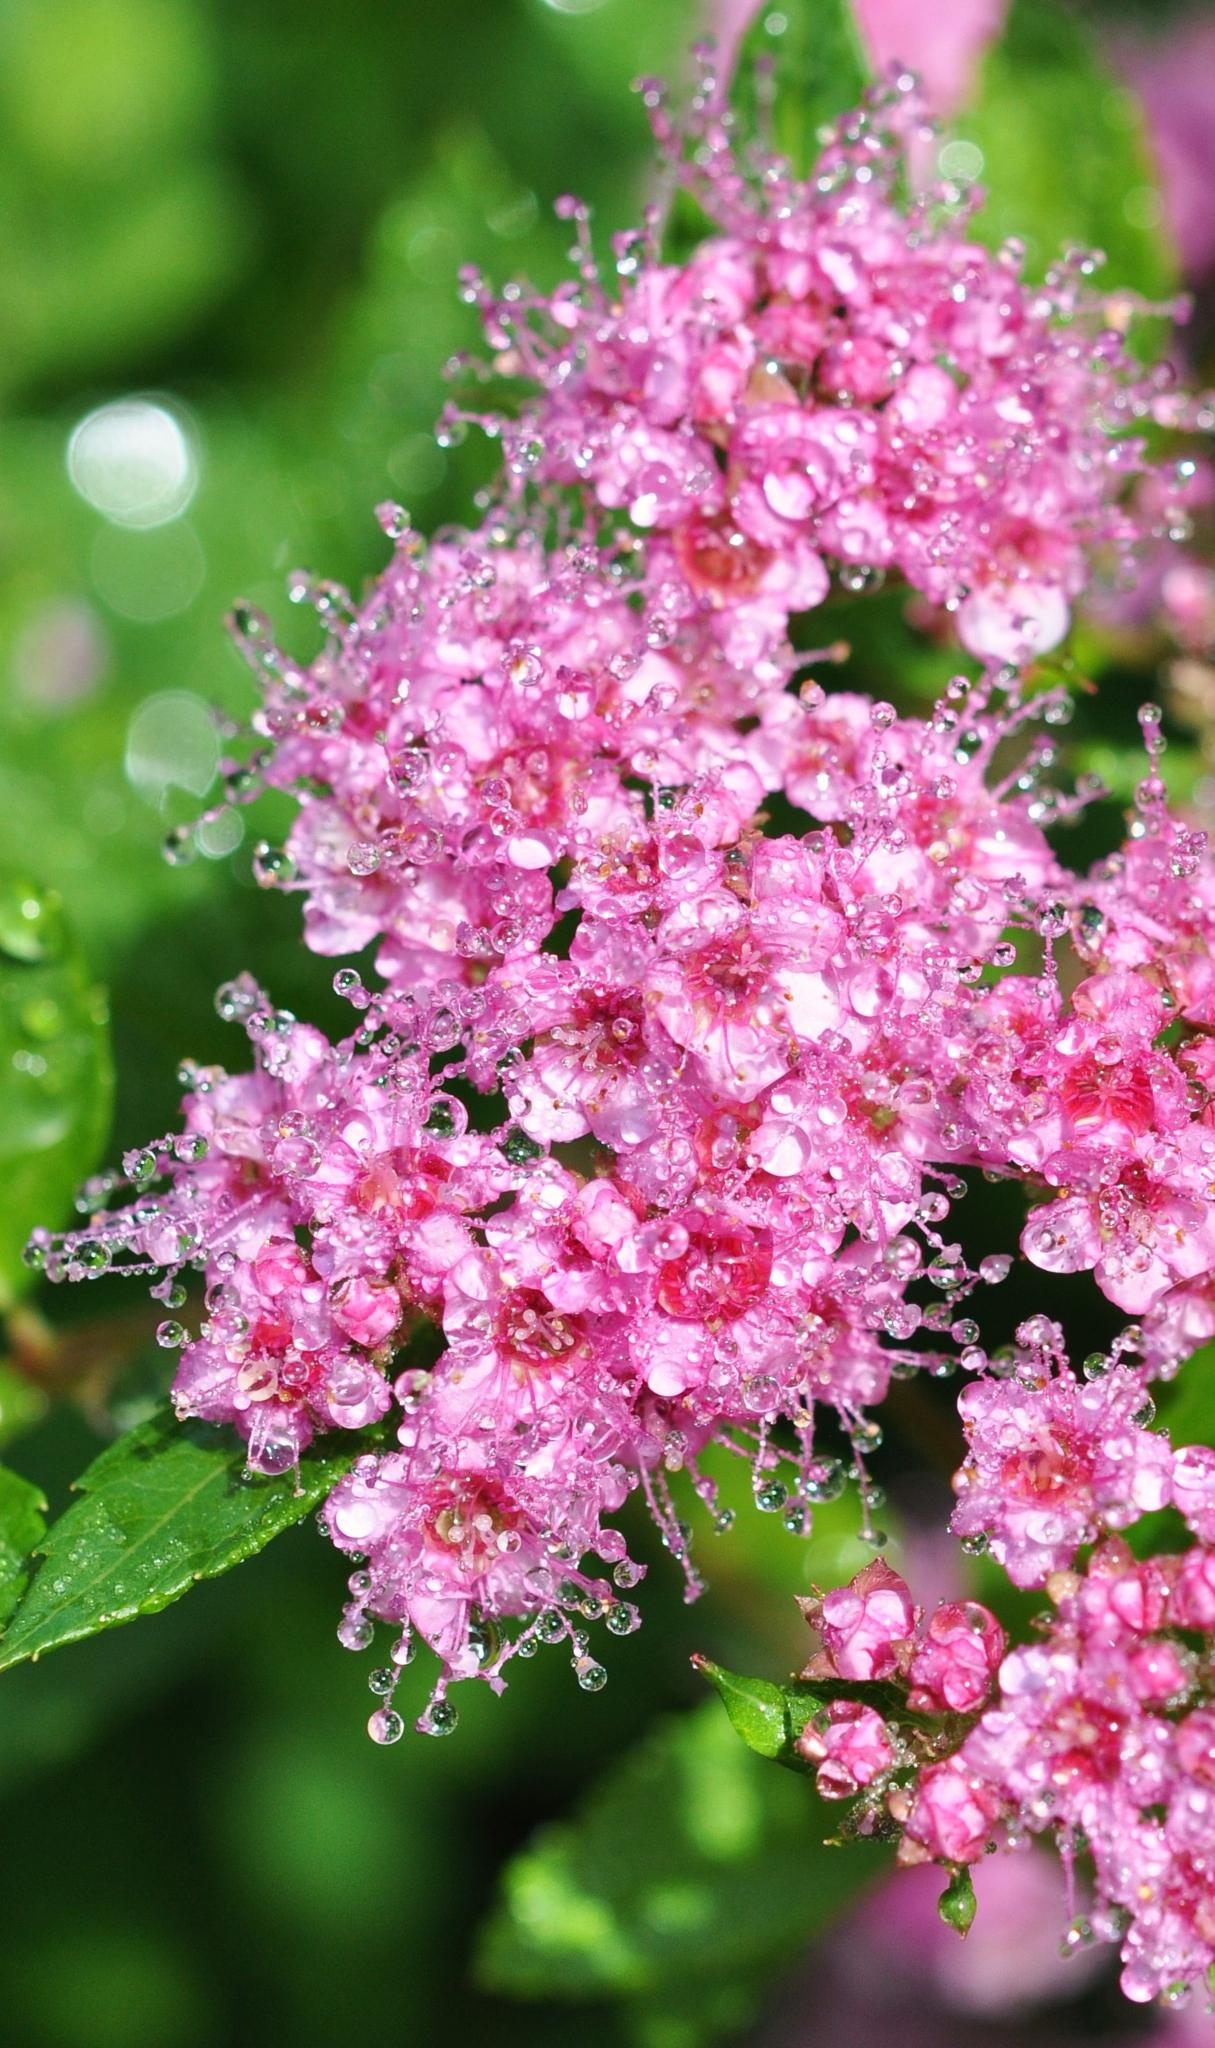 spirea after the rain by Alla-Rose